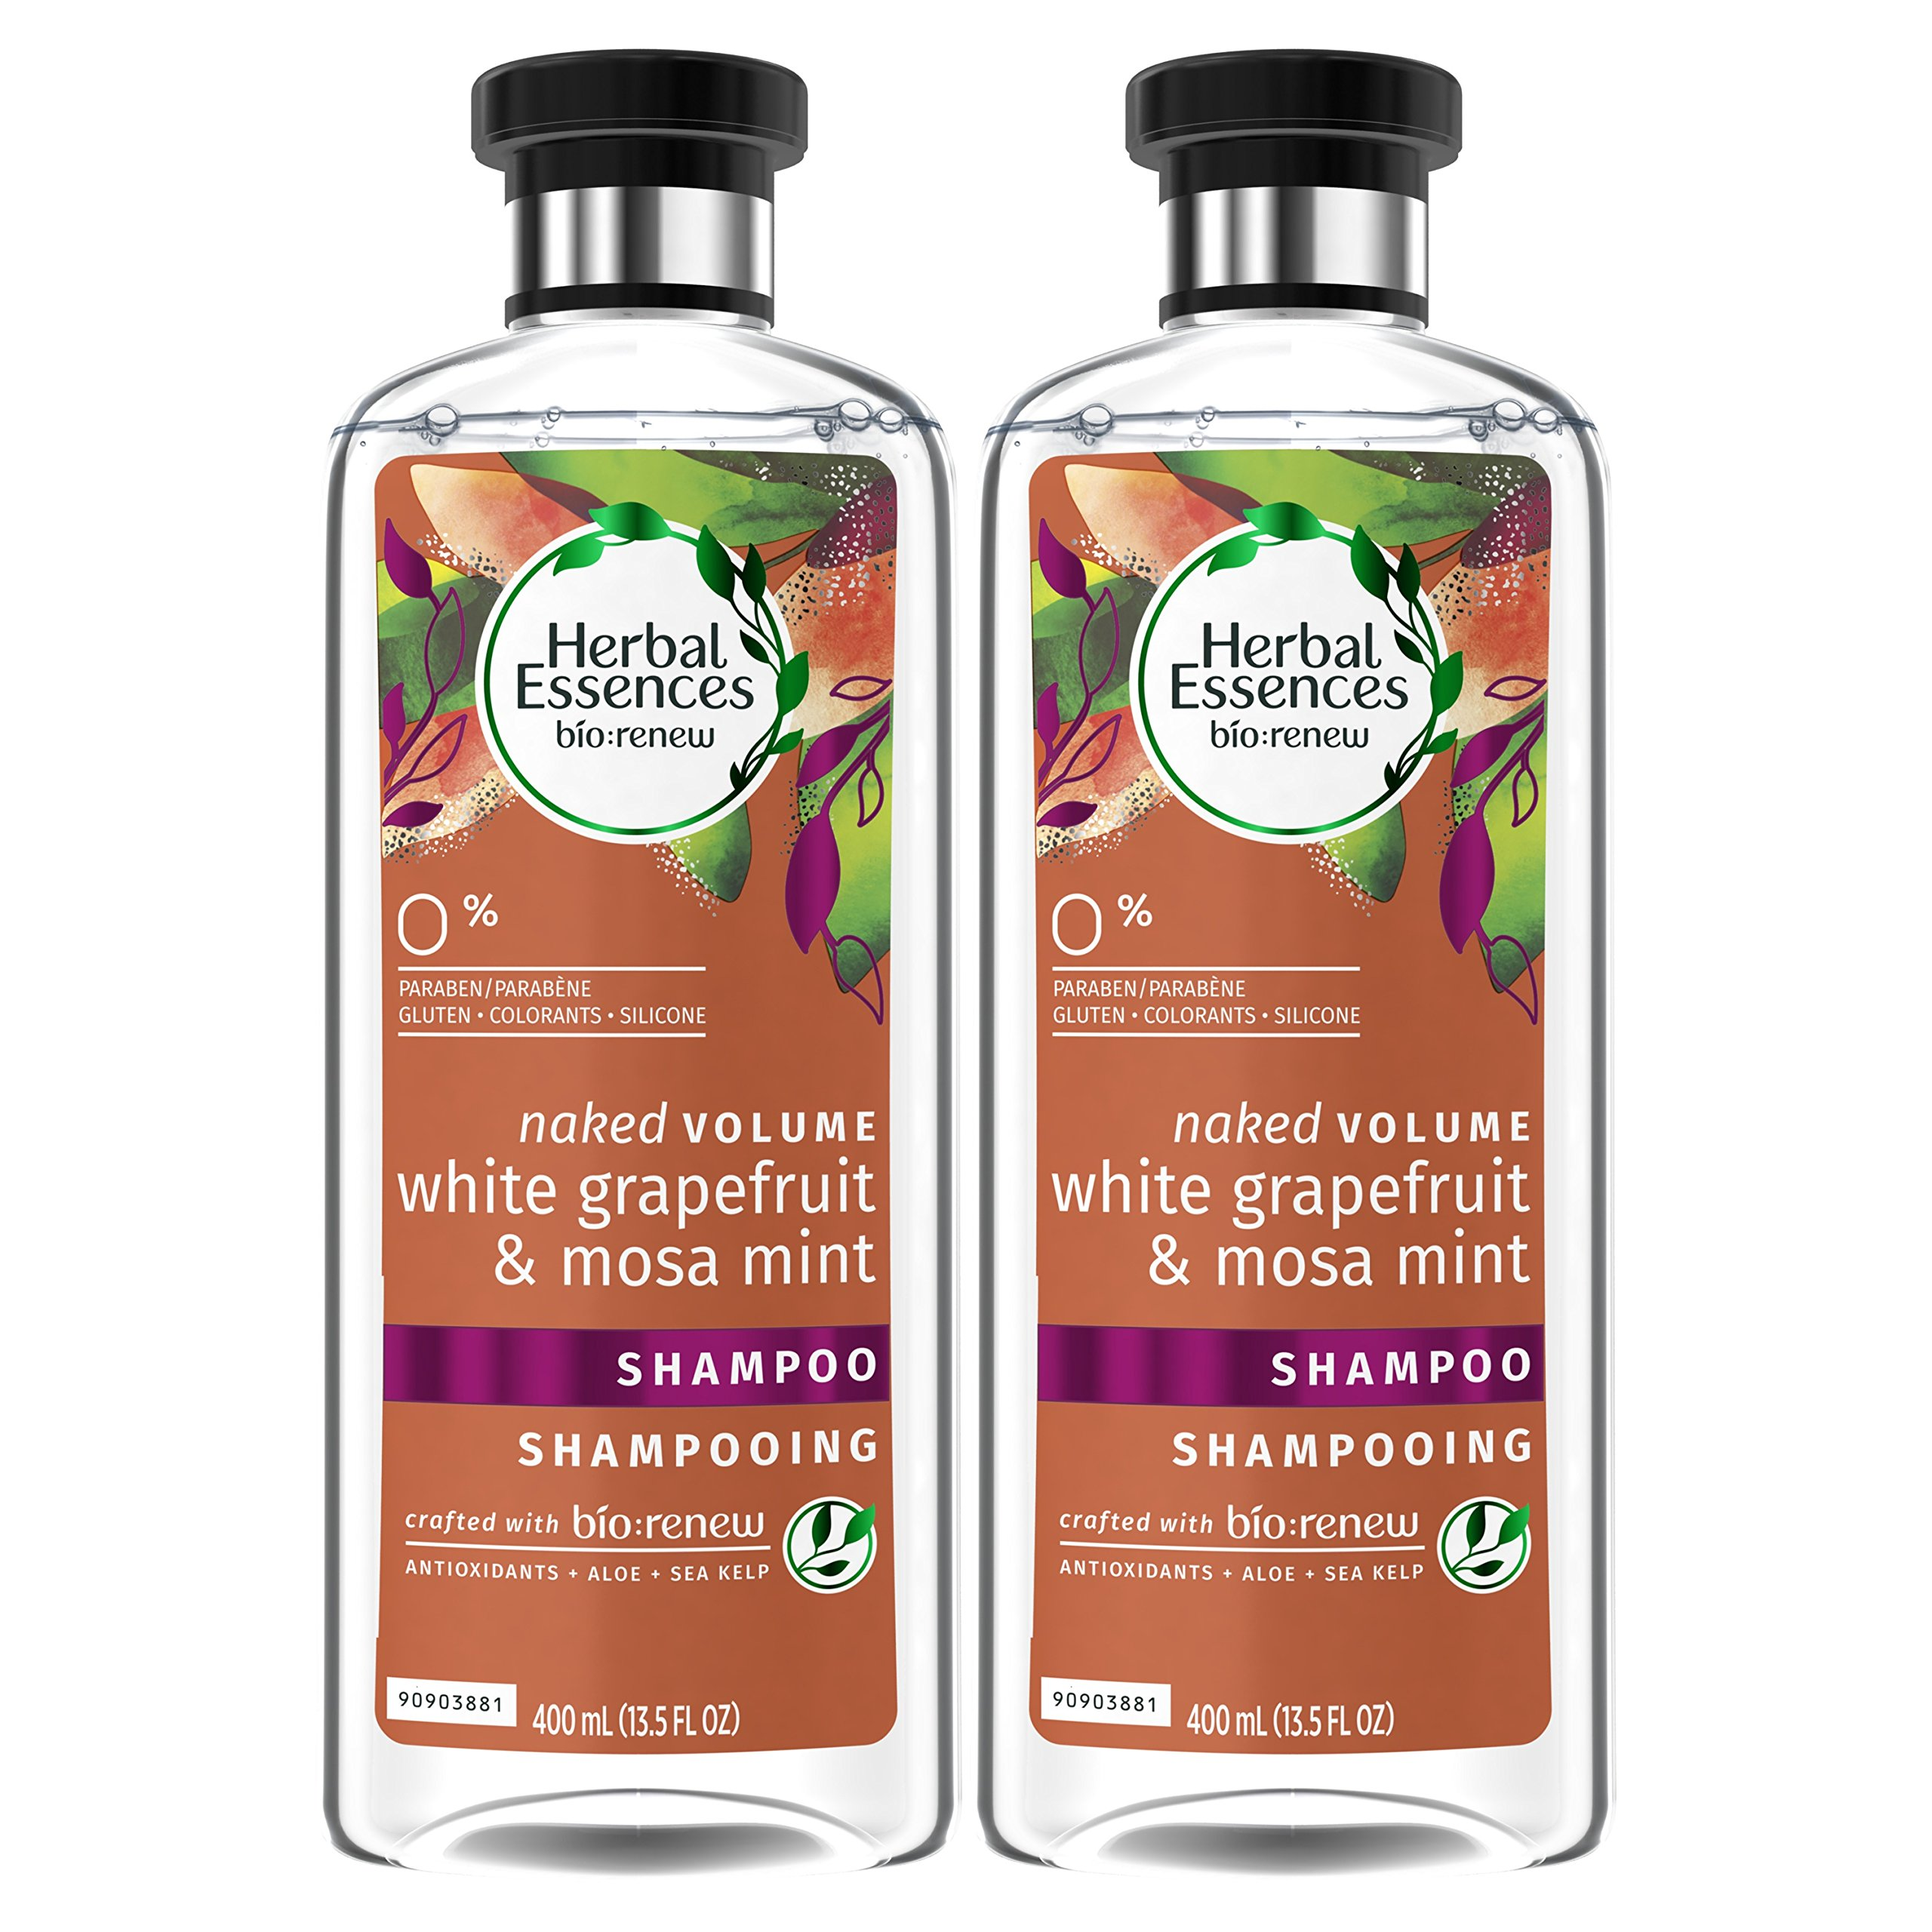 Herbal Essences Volume Shampoo, 13.5 Fluid Ounces (Pack of 2) - Biorenew White Grapefruit & Mosa Mint Naked, Paraben Free